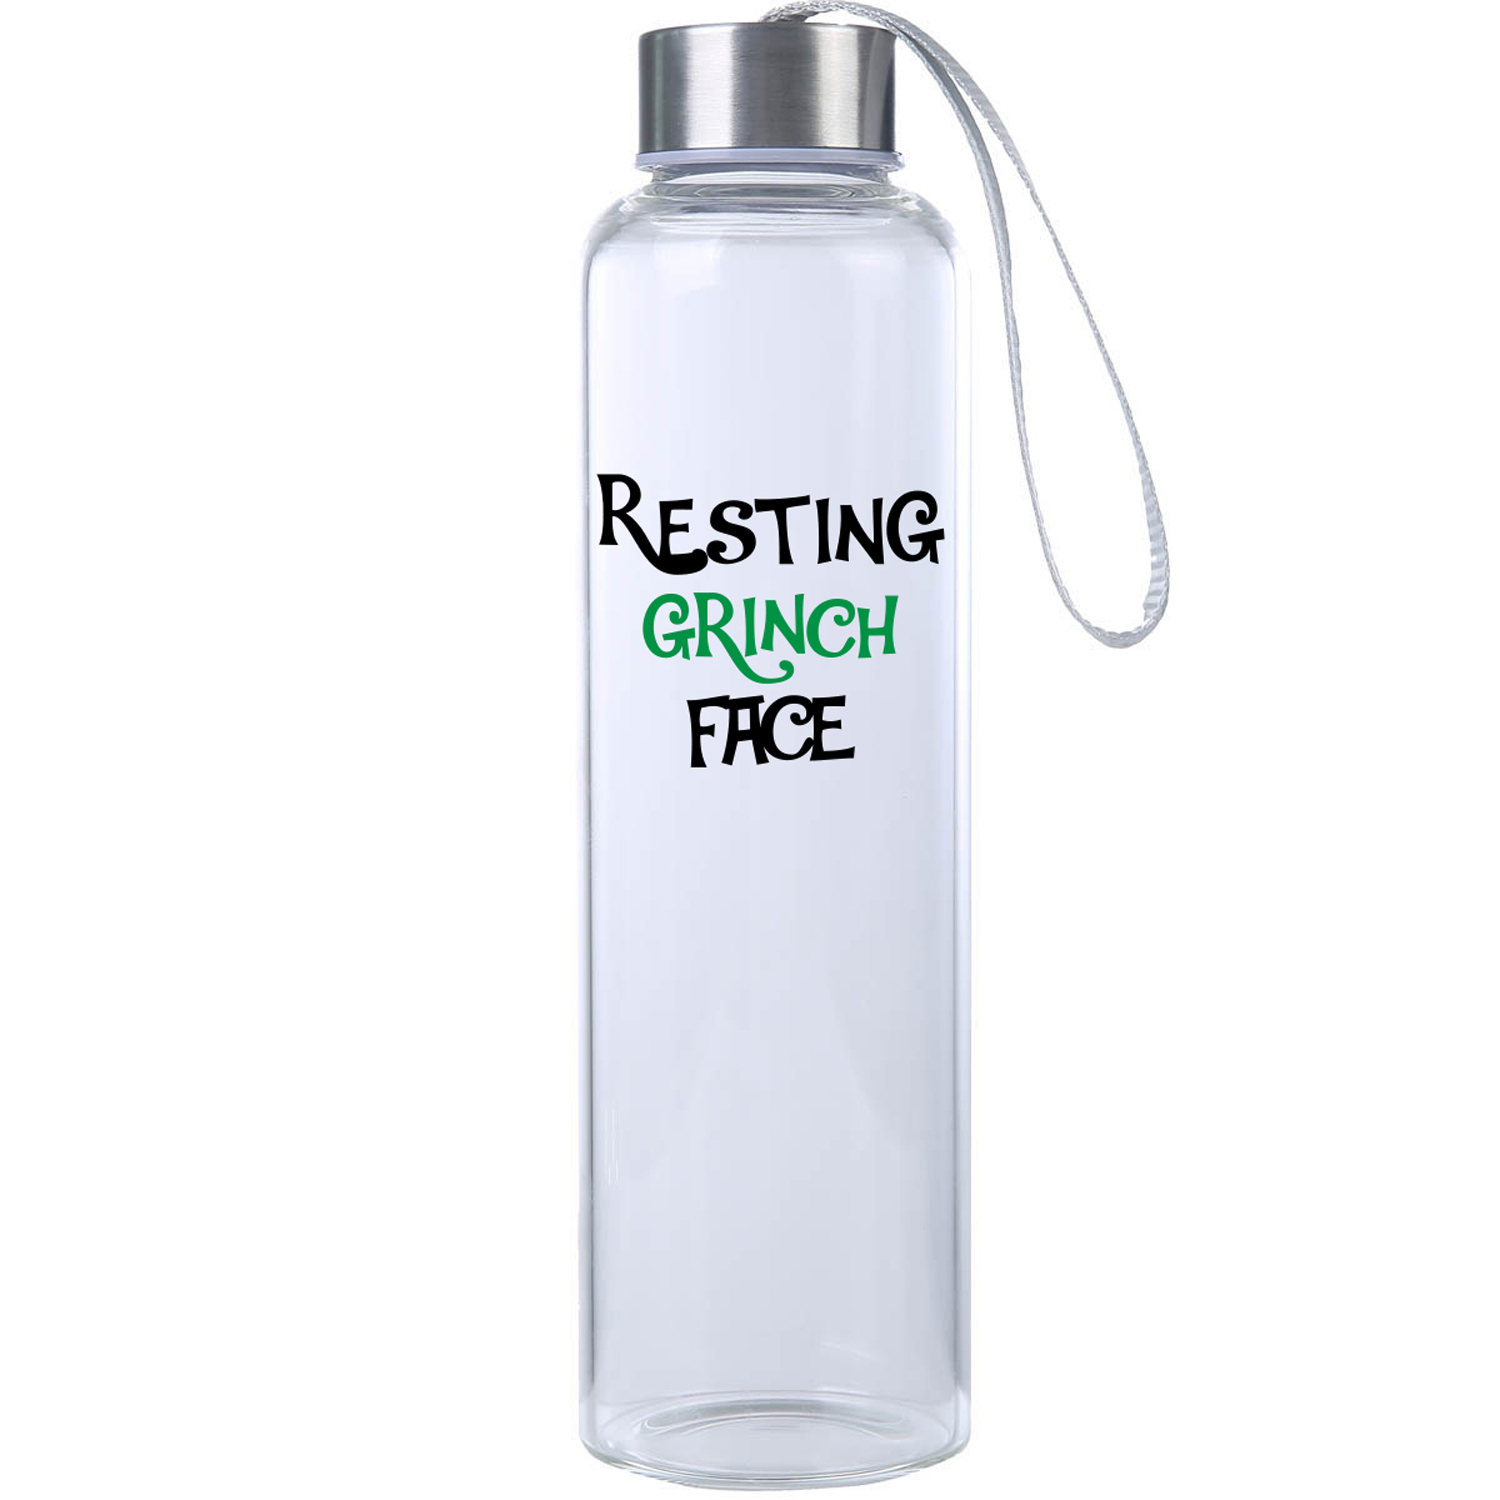 Resting Grinch Face Glass Water Bottle